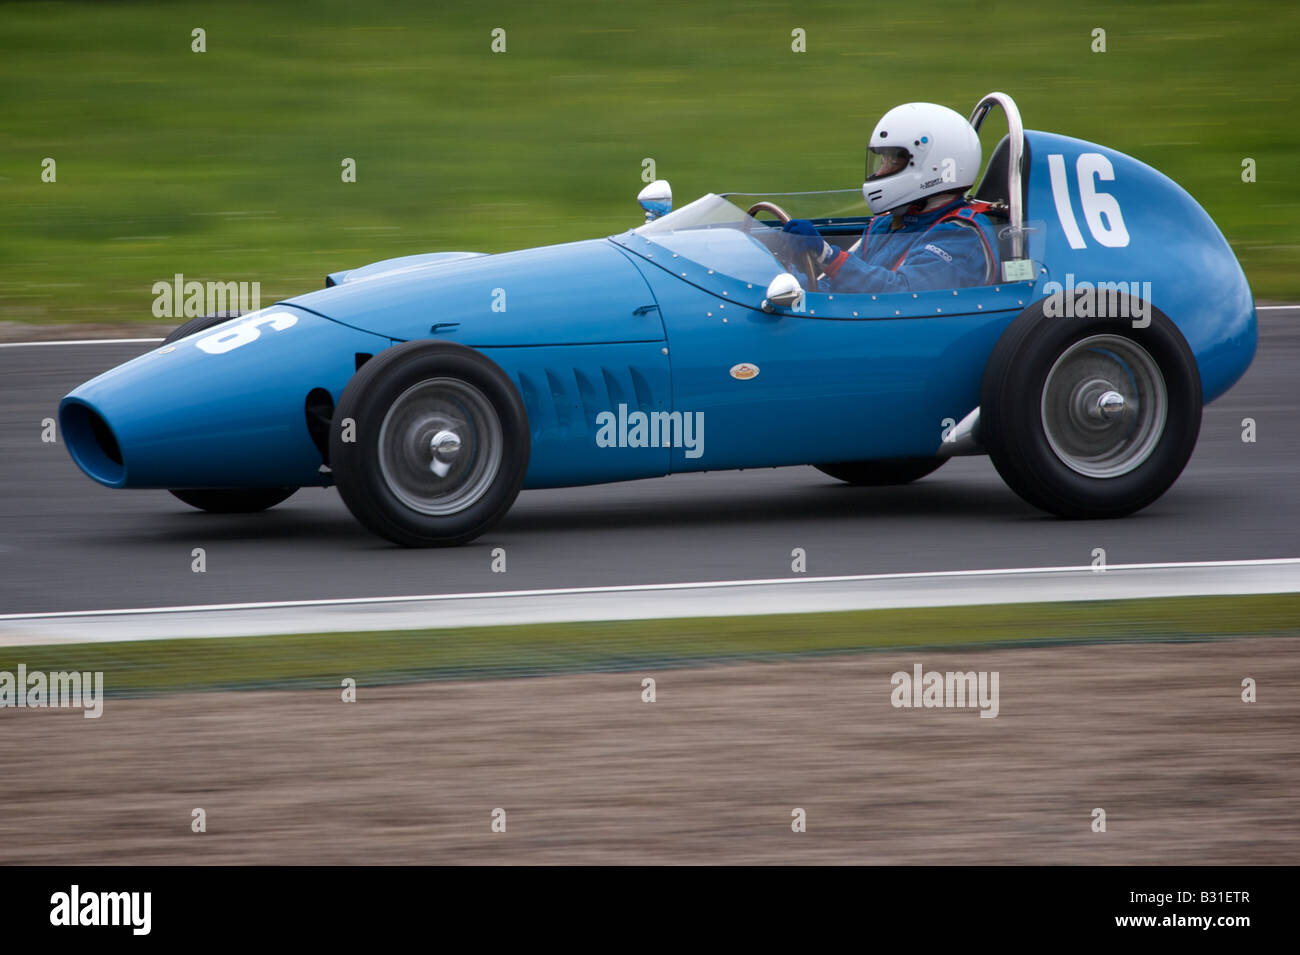 Historic racing car at Knockhill race track in Fife. - Stock Image